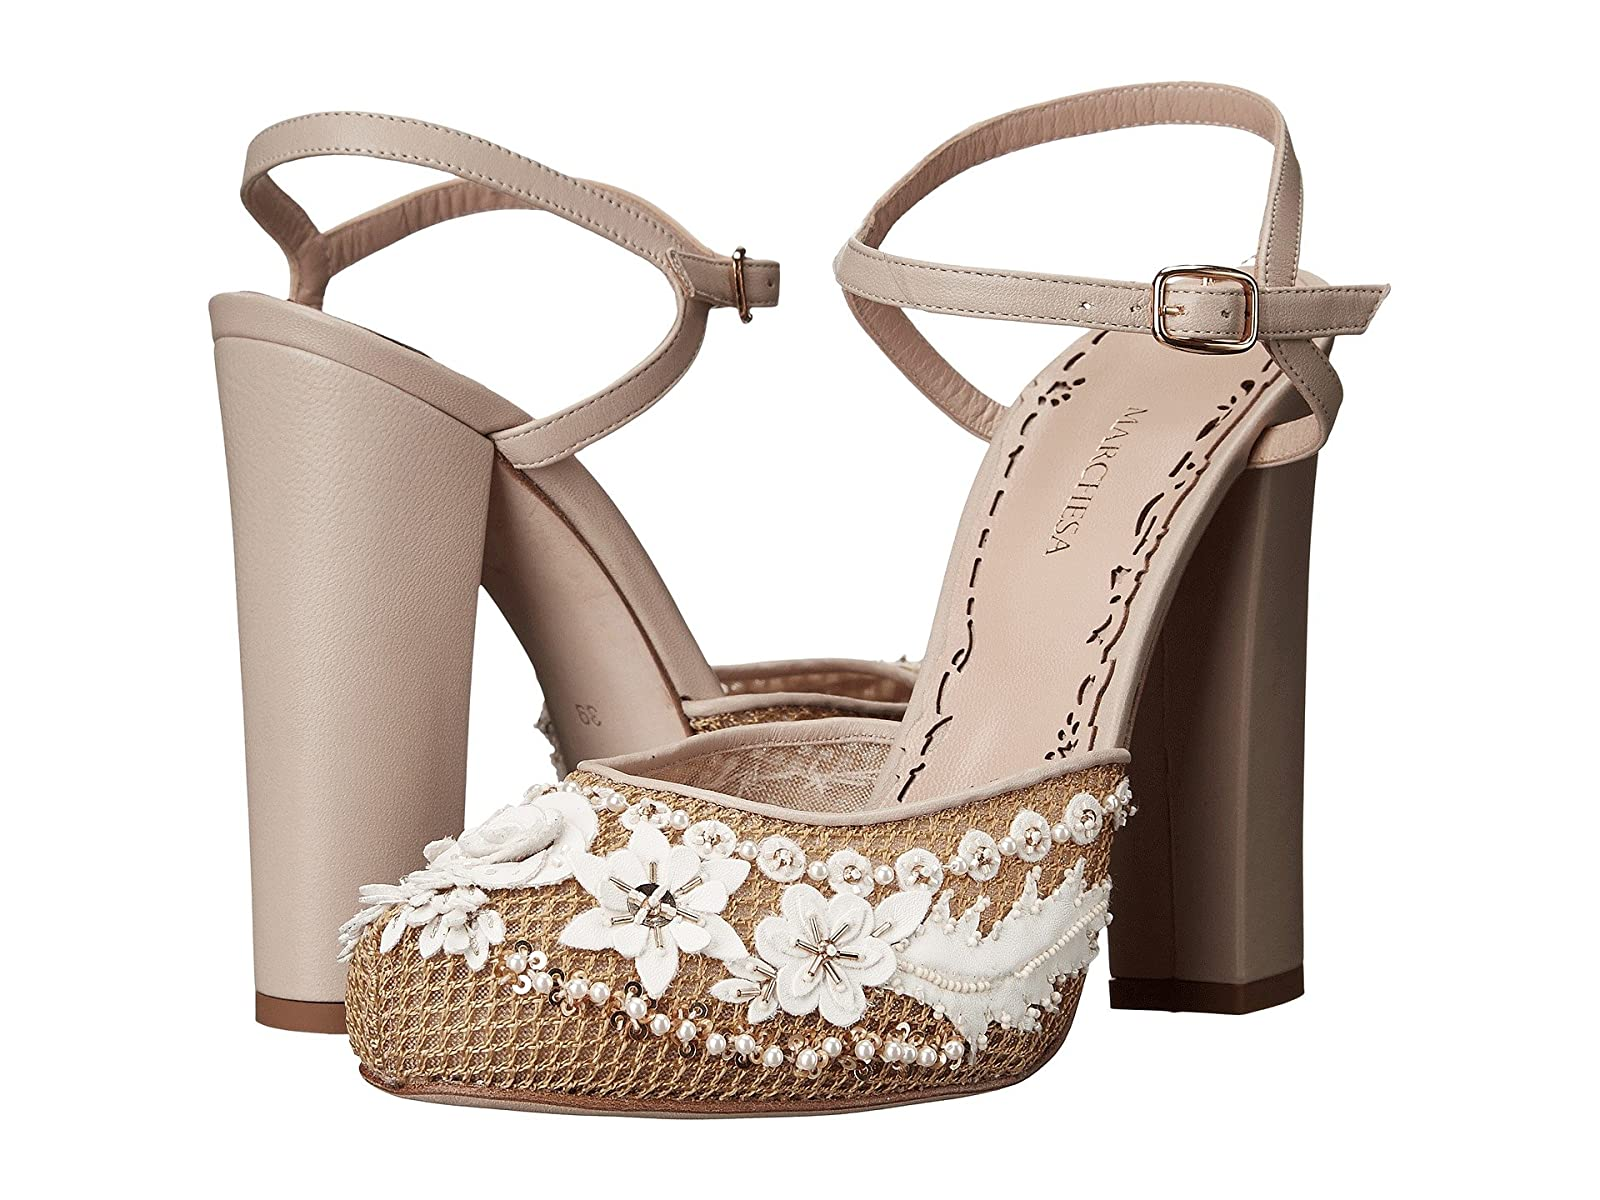 Marchesa MeganCheap and distinctive eye-catching shoes